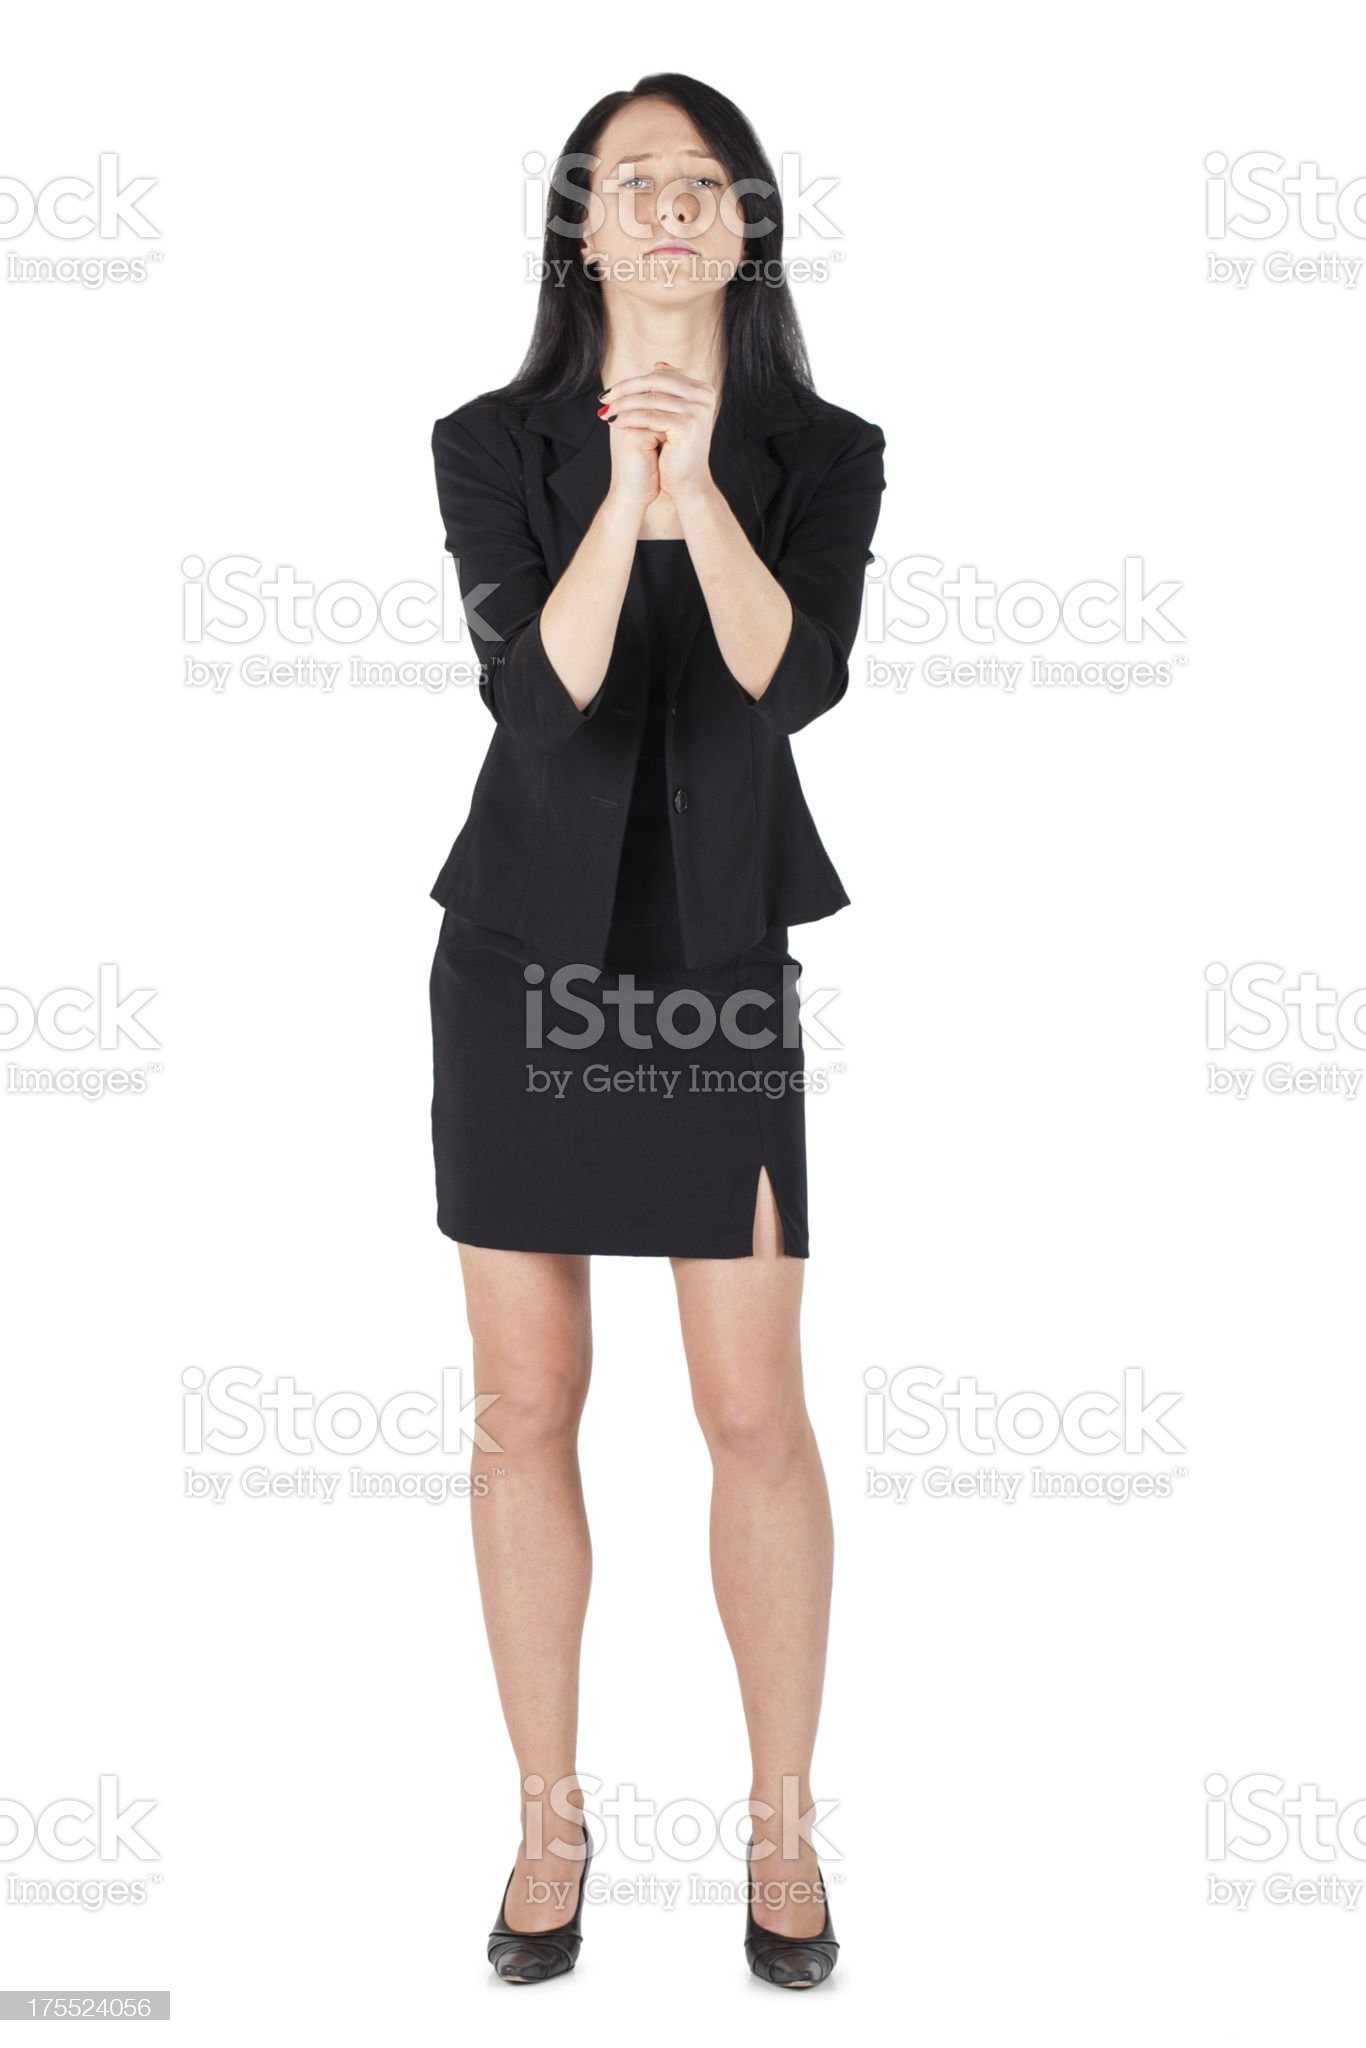 Business woman pleading hands clasped isolated royalty-free stock photo